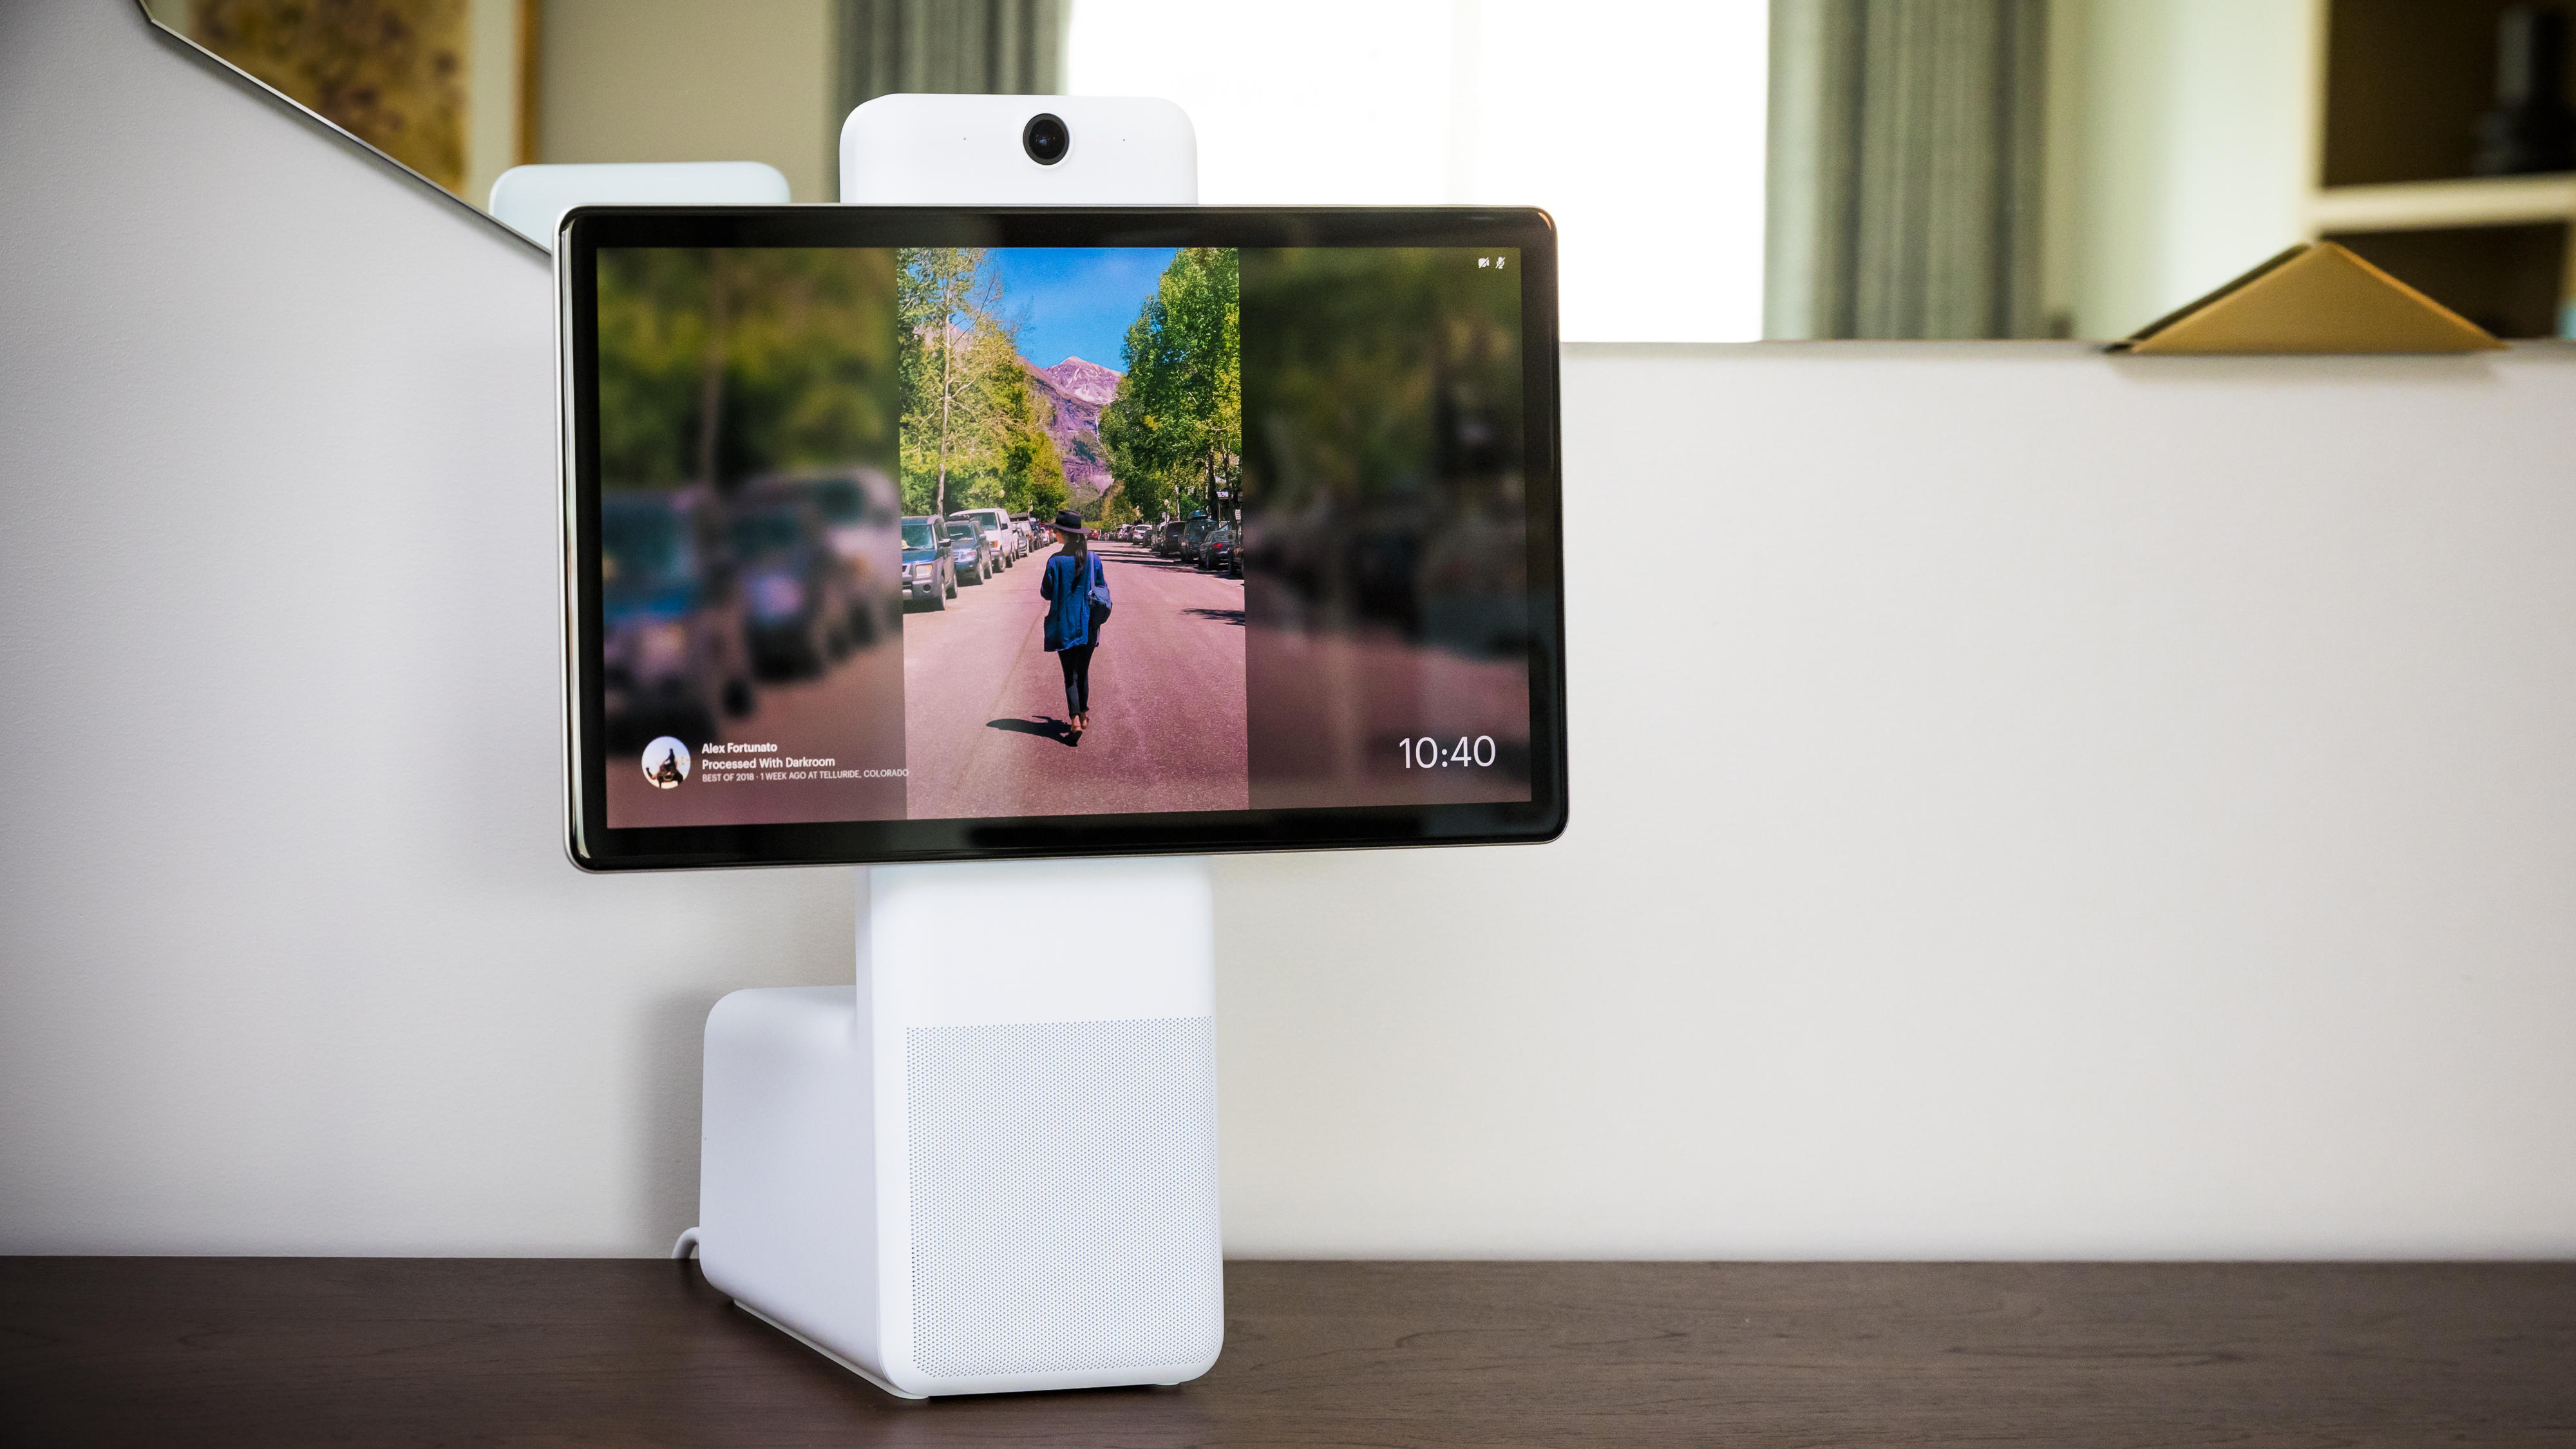 facebook-portal-plus-messenger-chat-2257